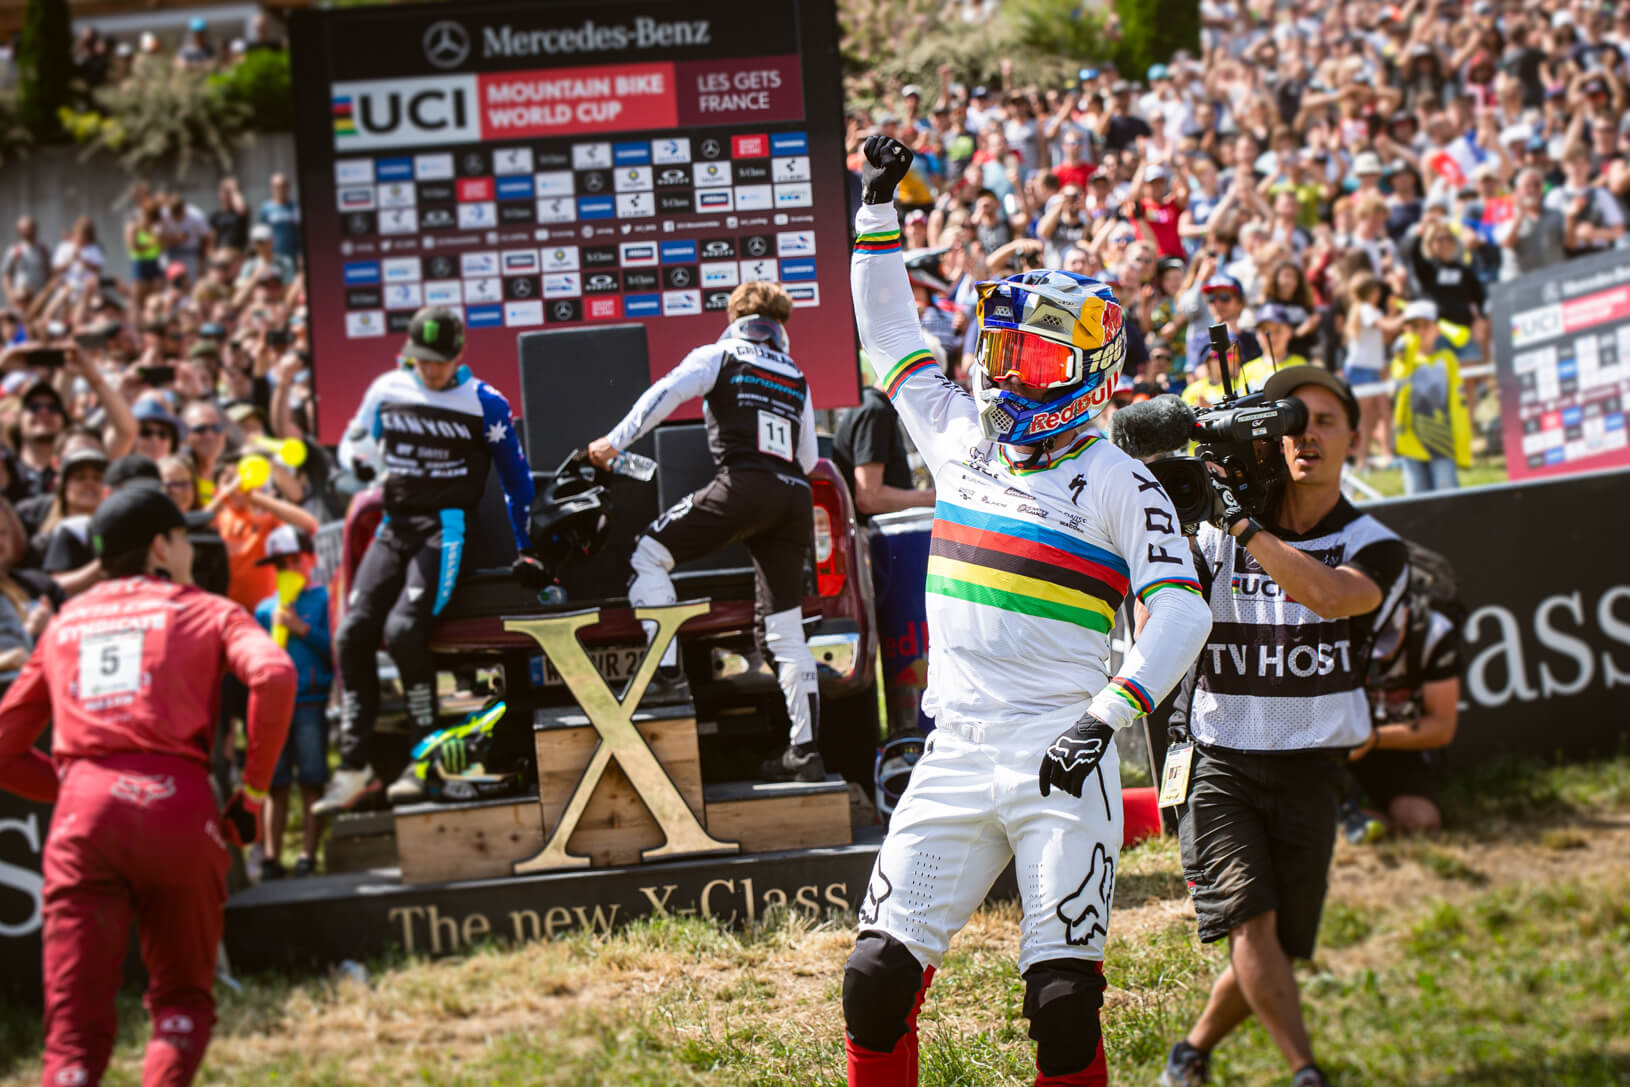 2021 : the return of the UCI MTB World Cup to Les Gets